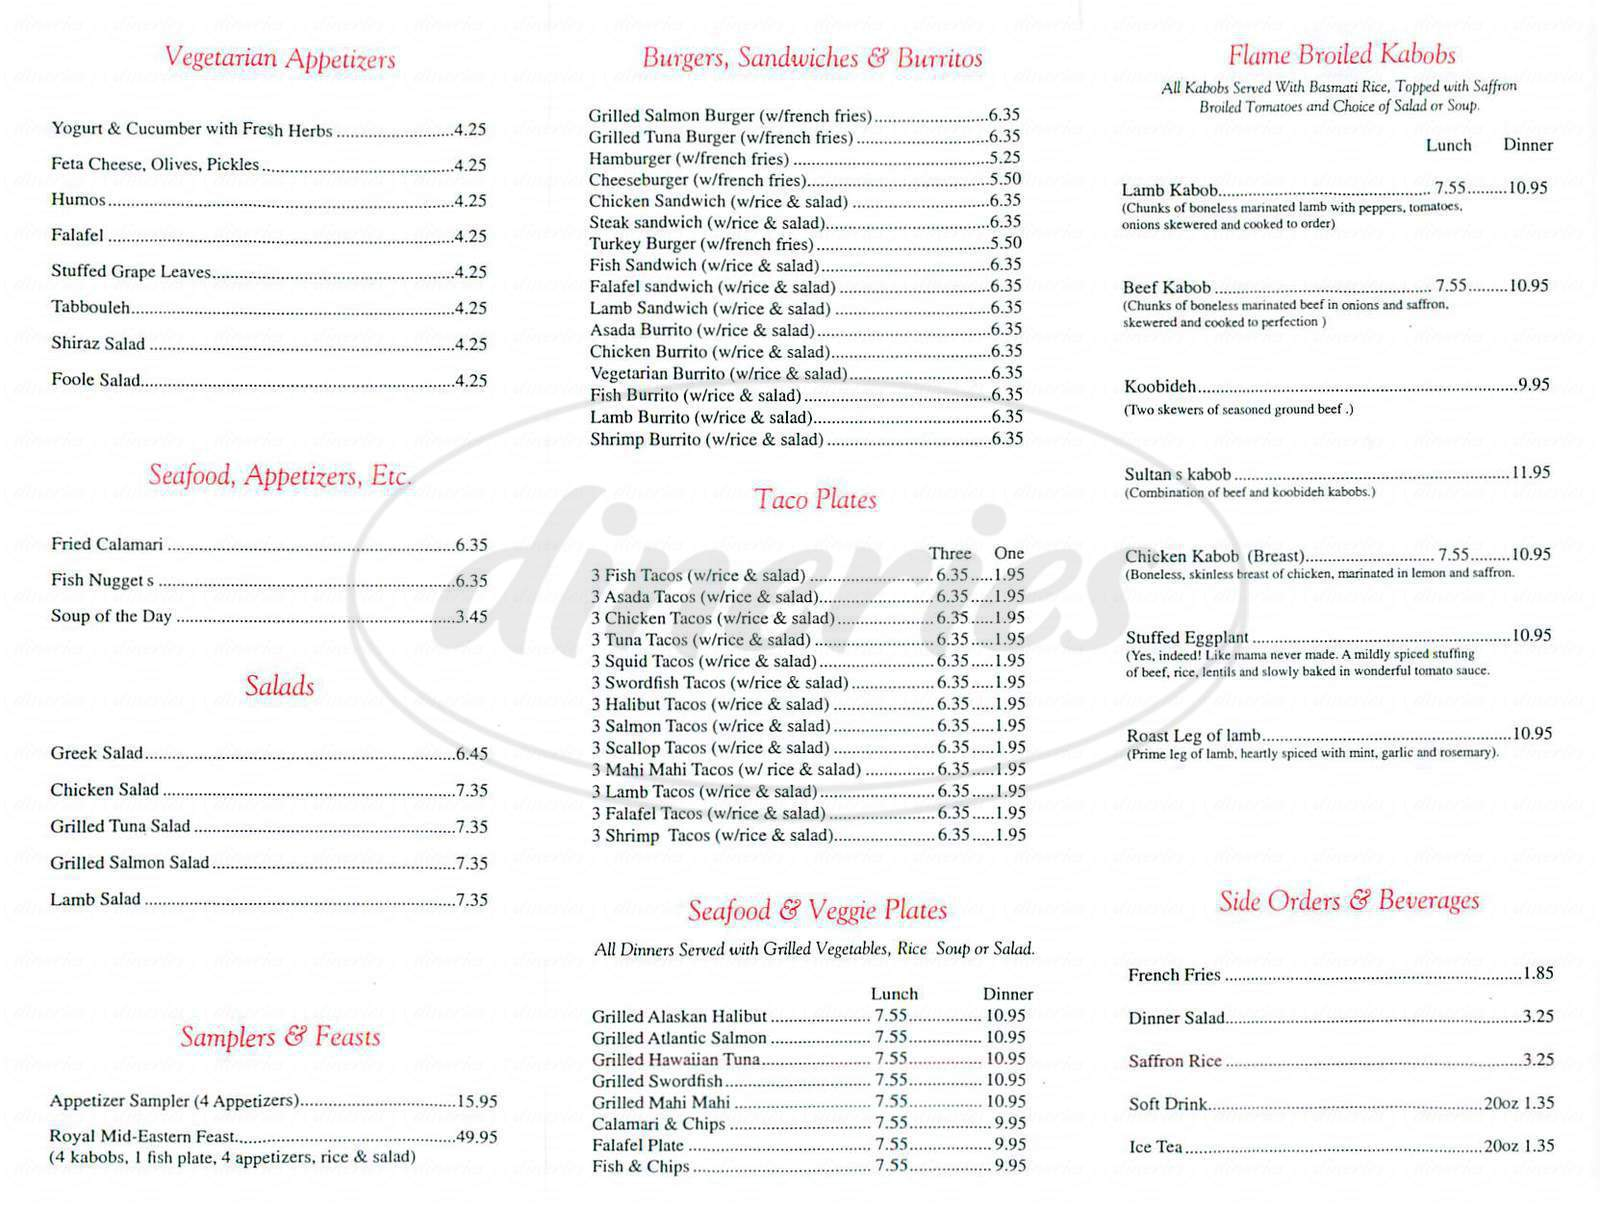 menu for Mediterranean Seafood Vegetarian Specialties